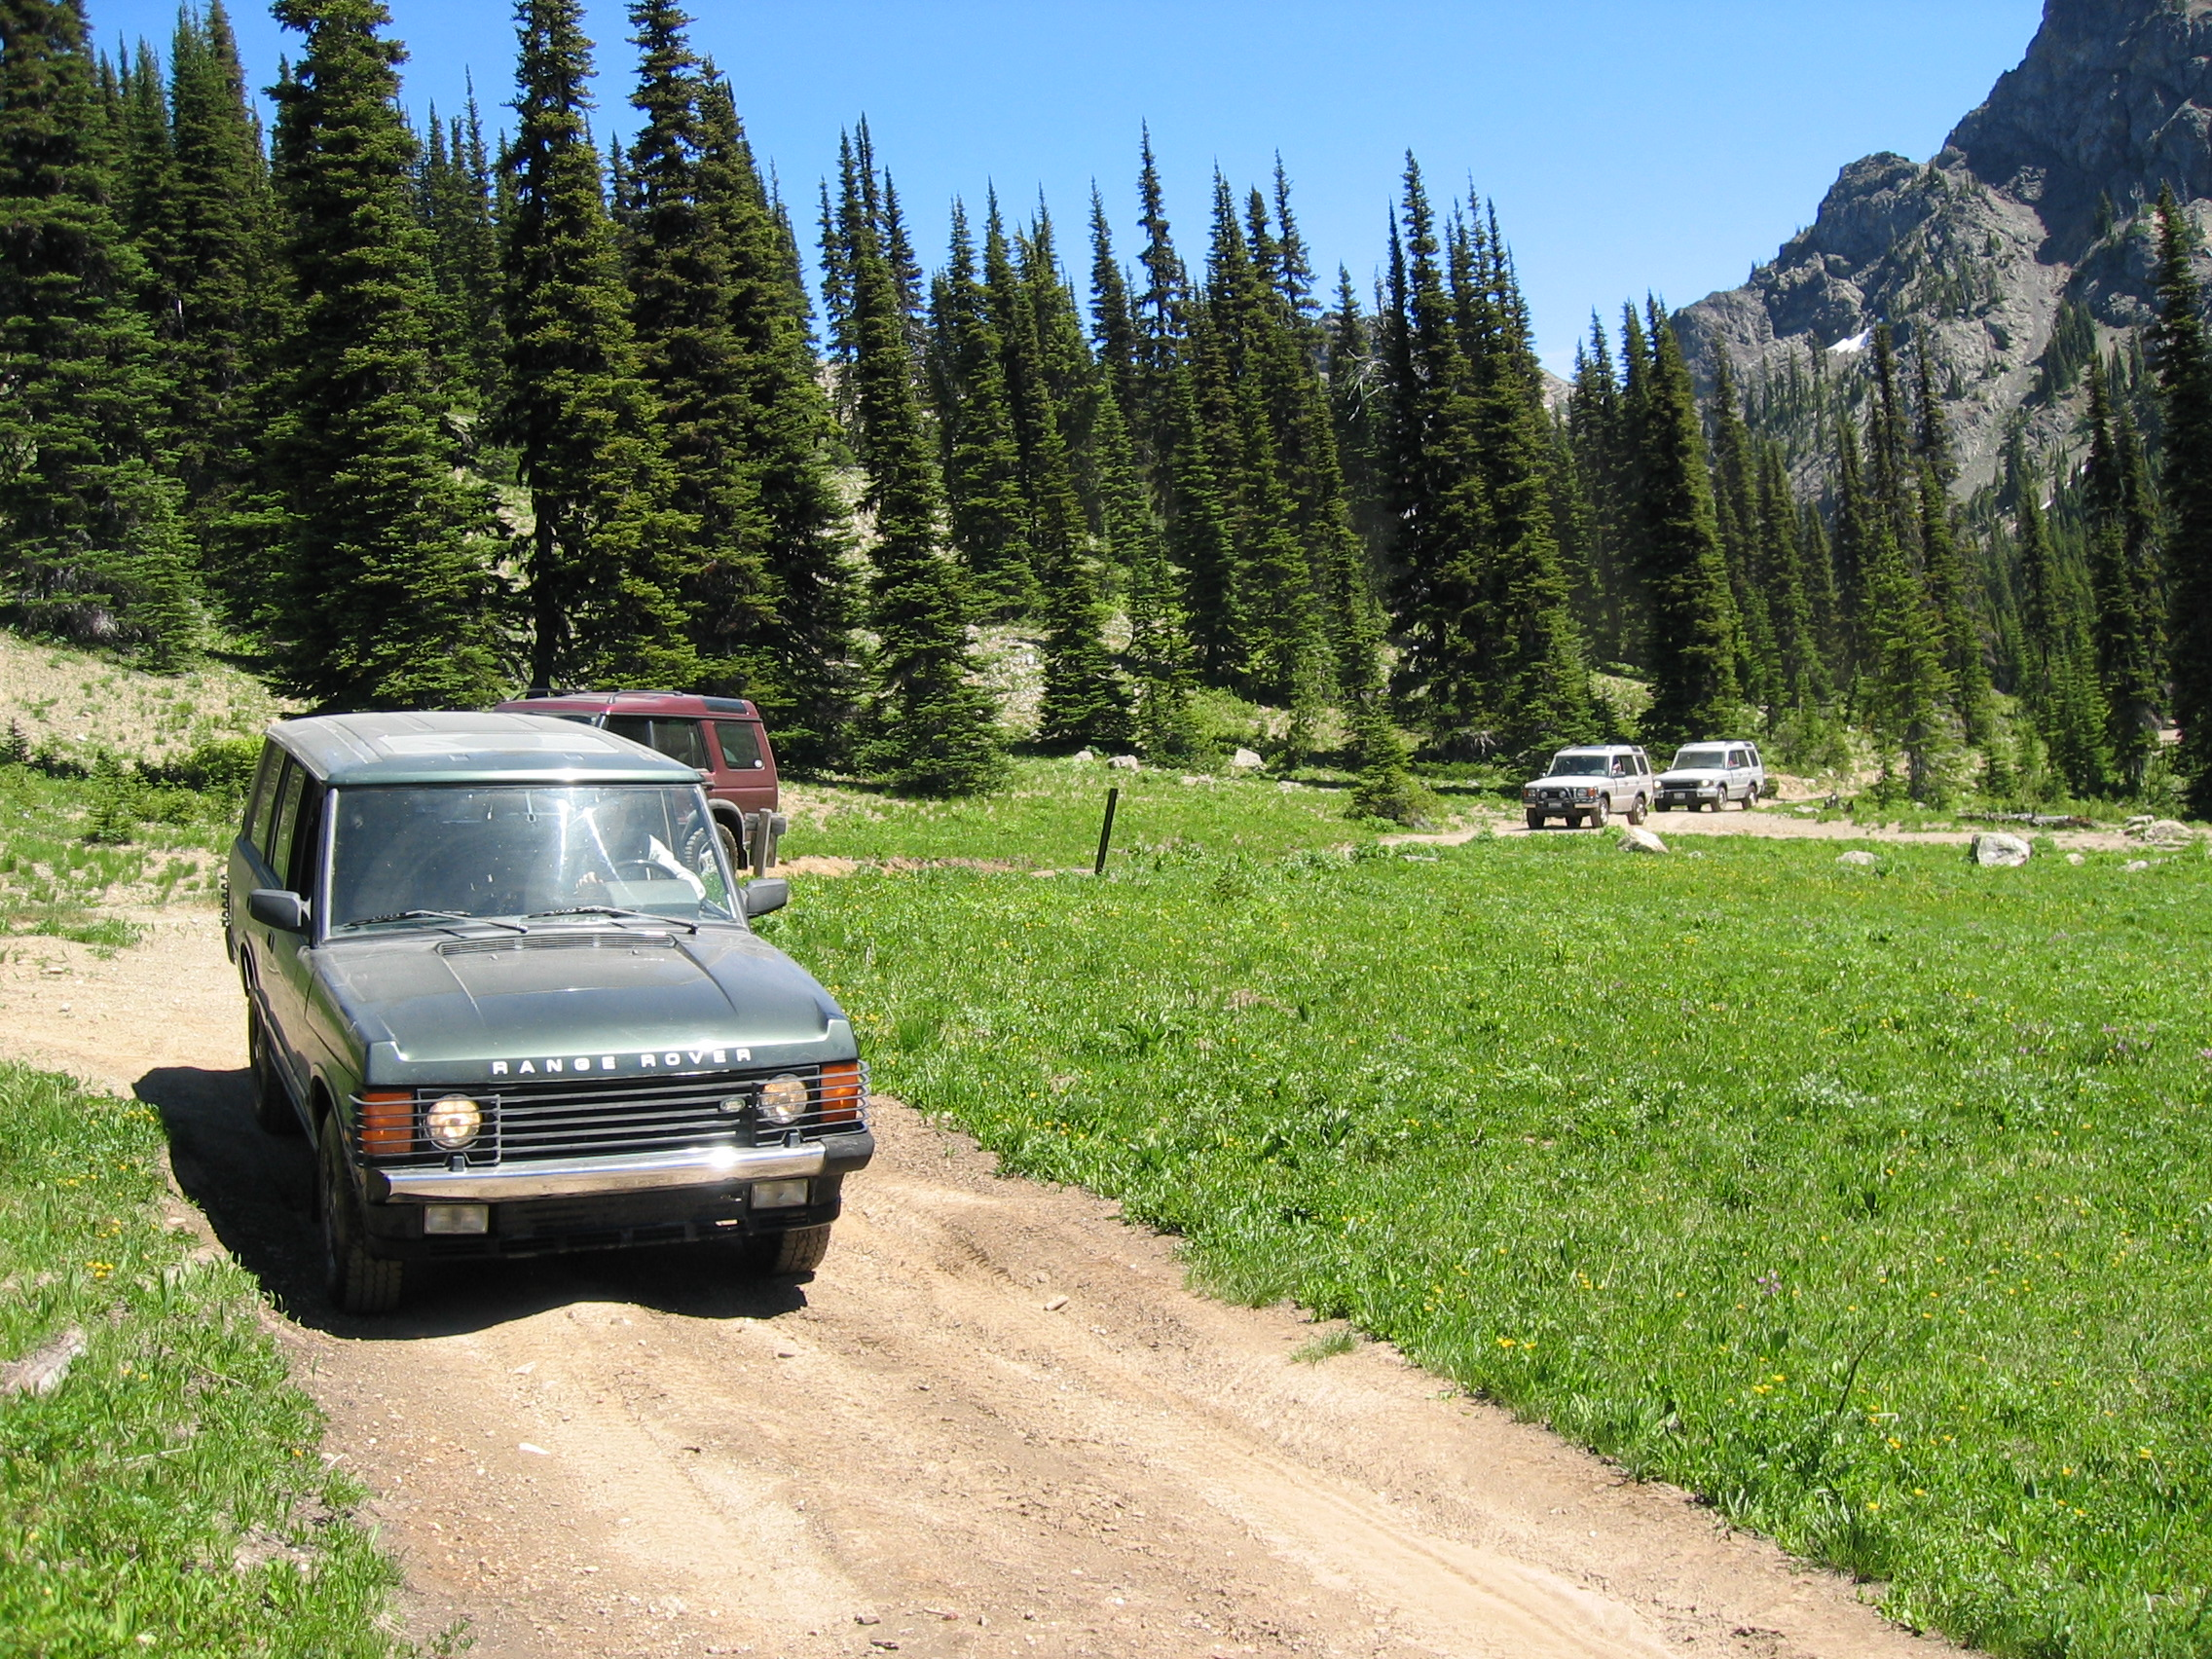 convoy nearing lake.JPG